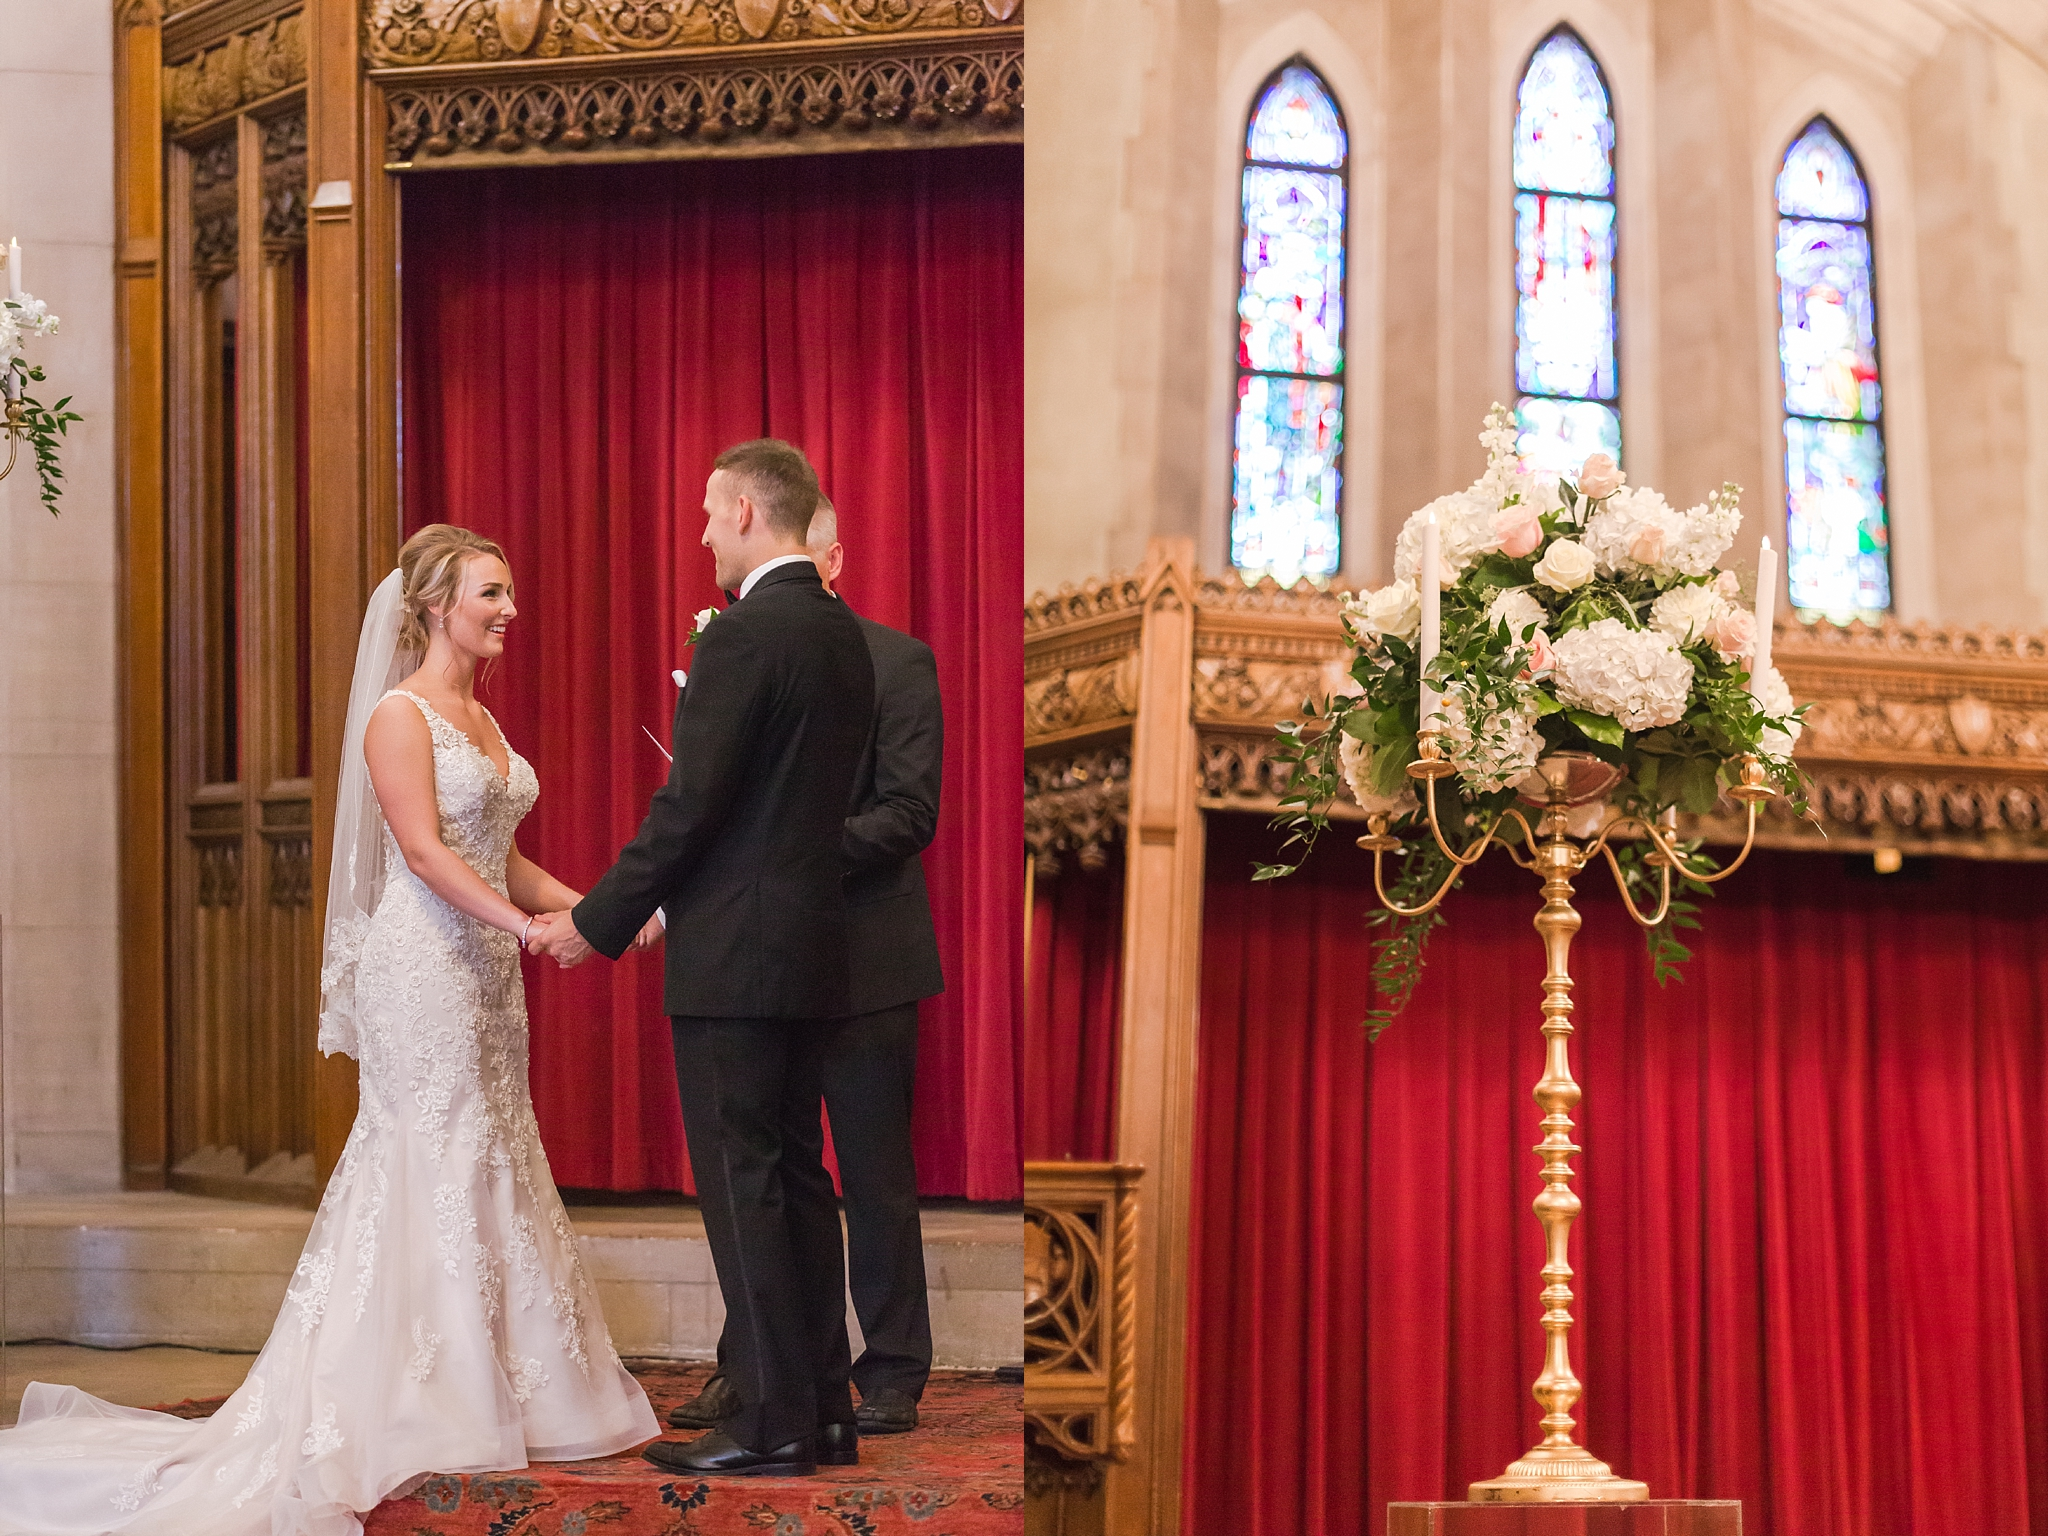 candid-romantic-wedding-photos-at-the-masonic-temple-belle-isle-detroit-institute-of-arts-in-detroit-michigan-by-courtney-carolyn-photography_0079.jpg